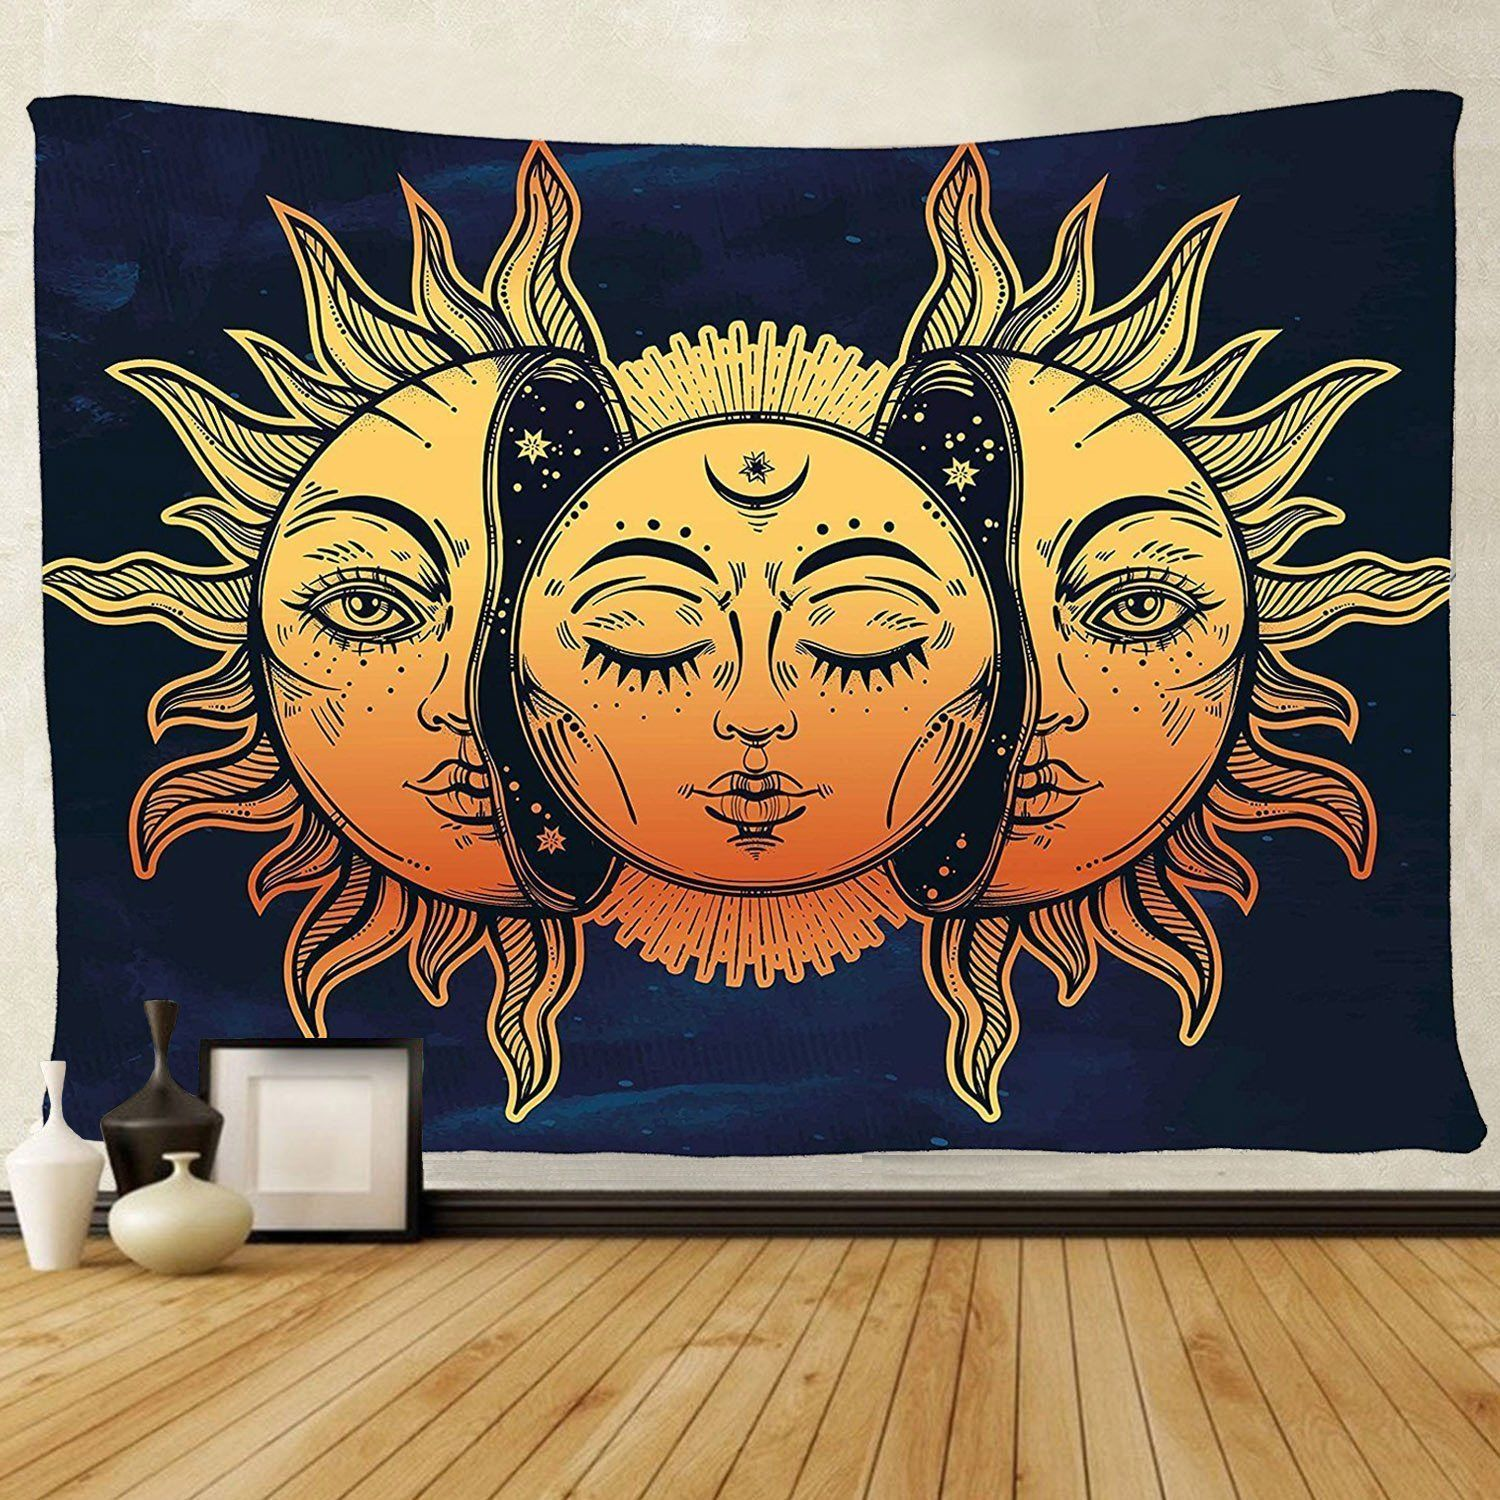 sun and moon psychedelic tapestry wall art decor 50 x 60 free 2 day shipping tapestries. Black Bedroom Furniture Sets. Home Design Ideas